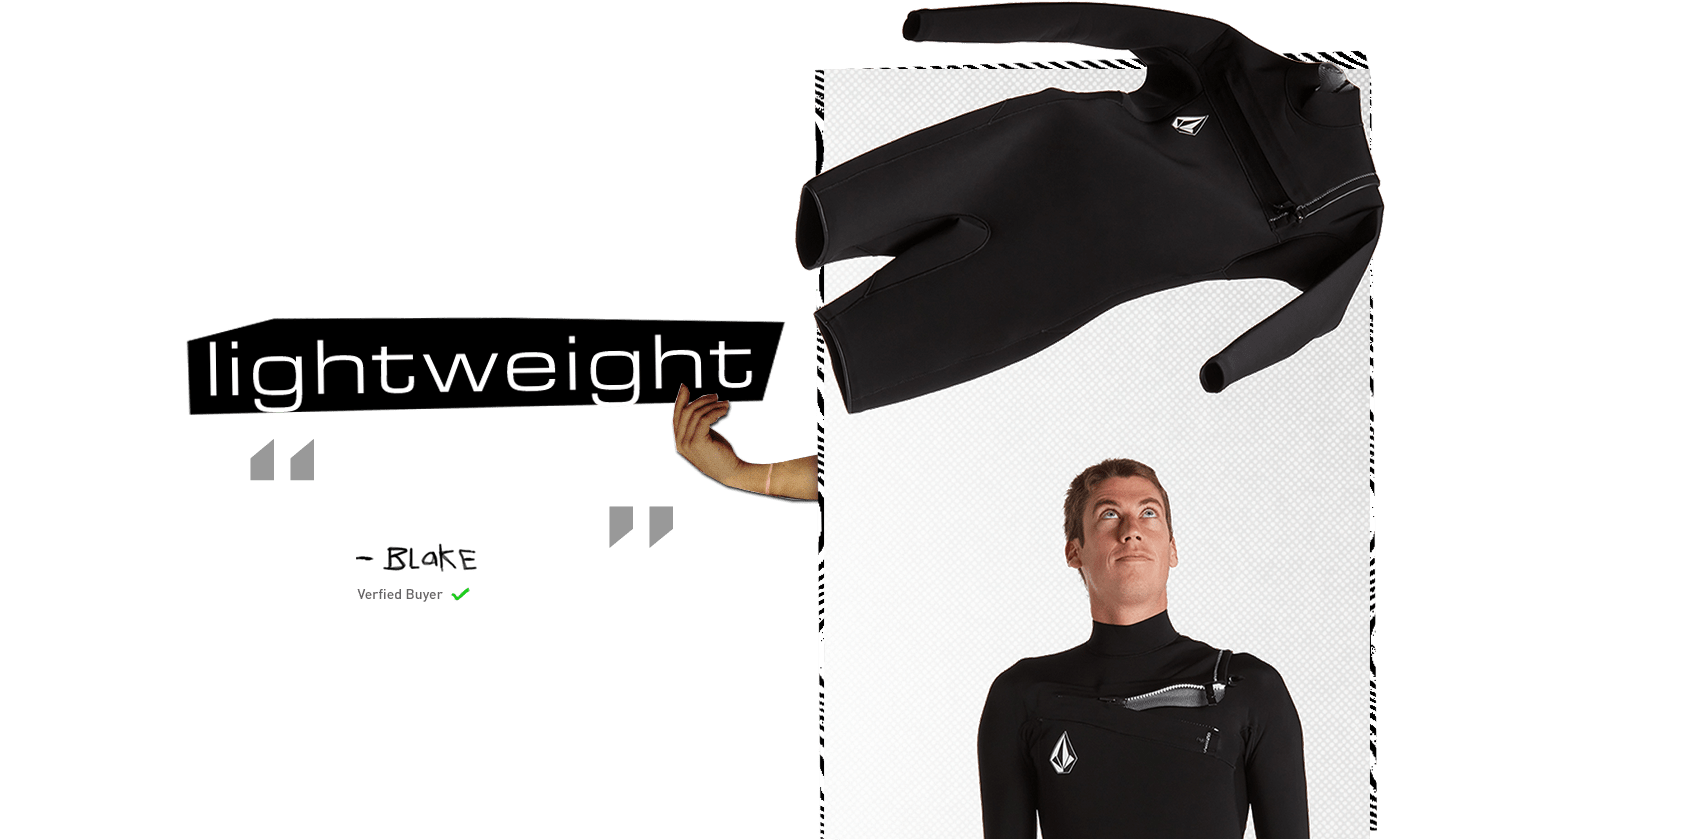 surfer throwing lightweight wetsuit in the air review by blake verified buyer